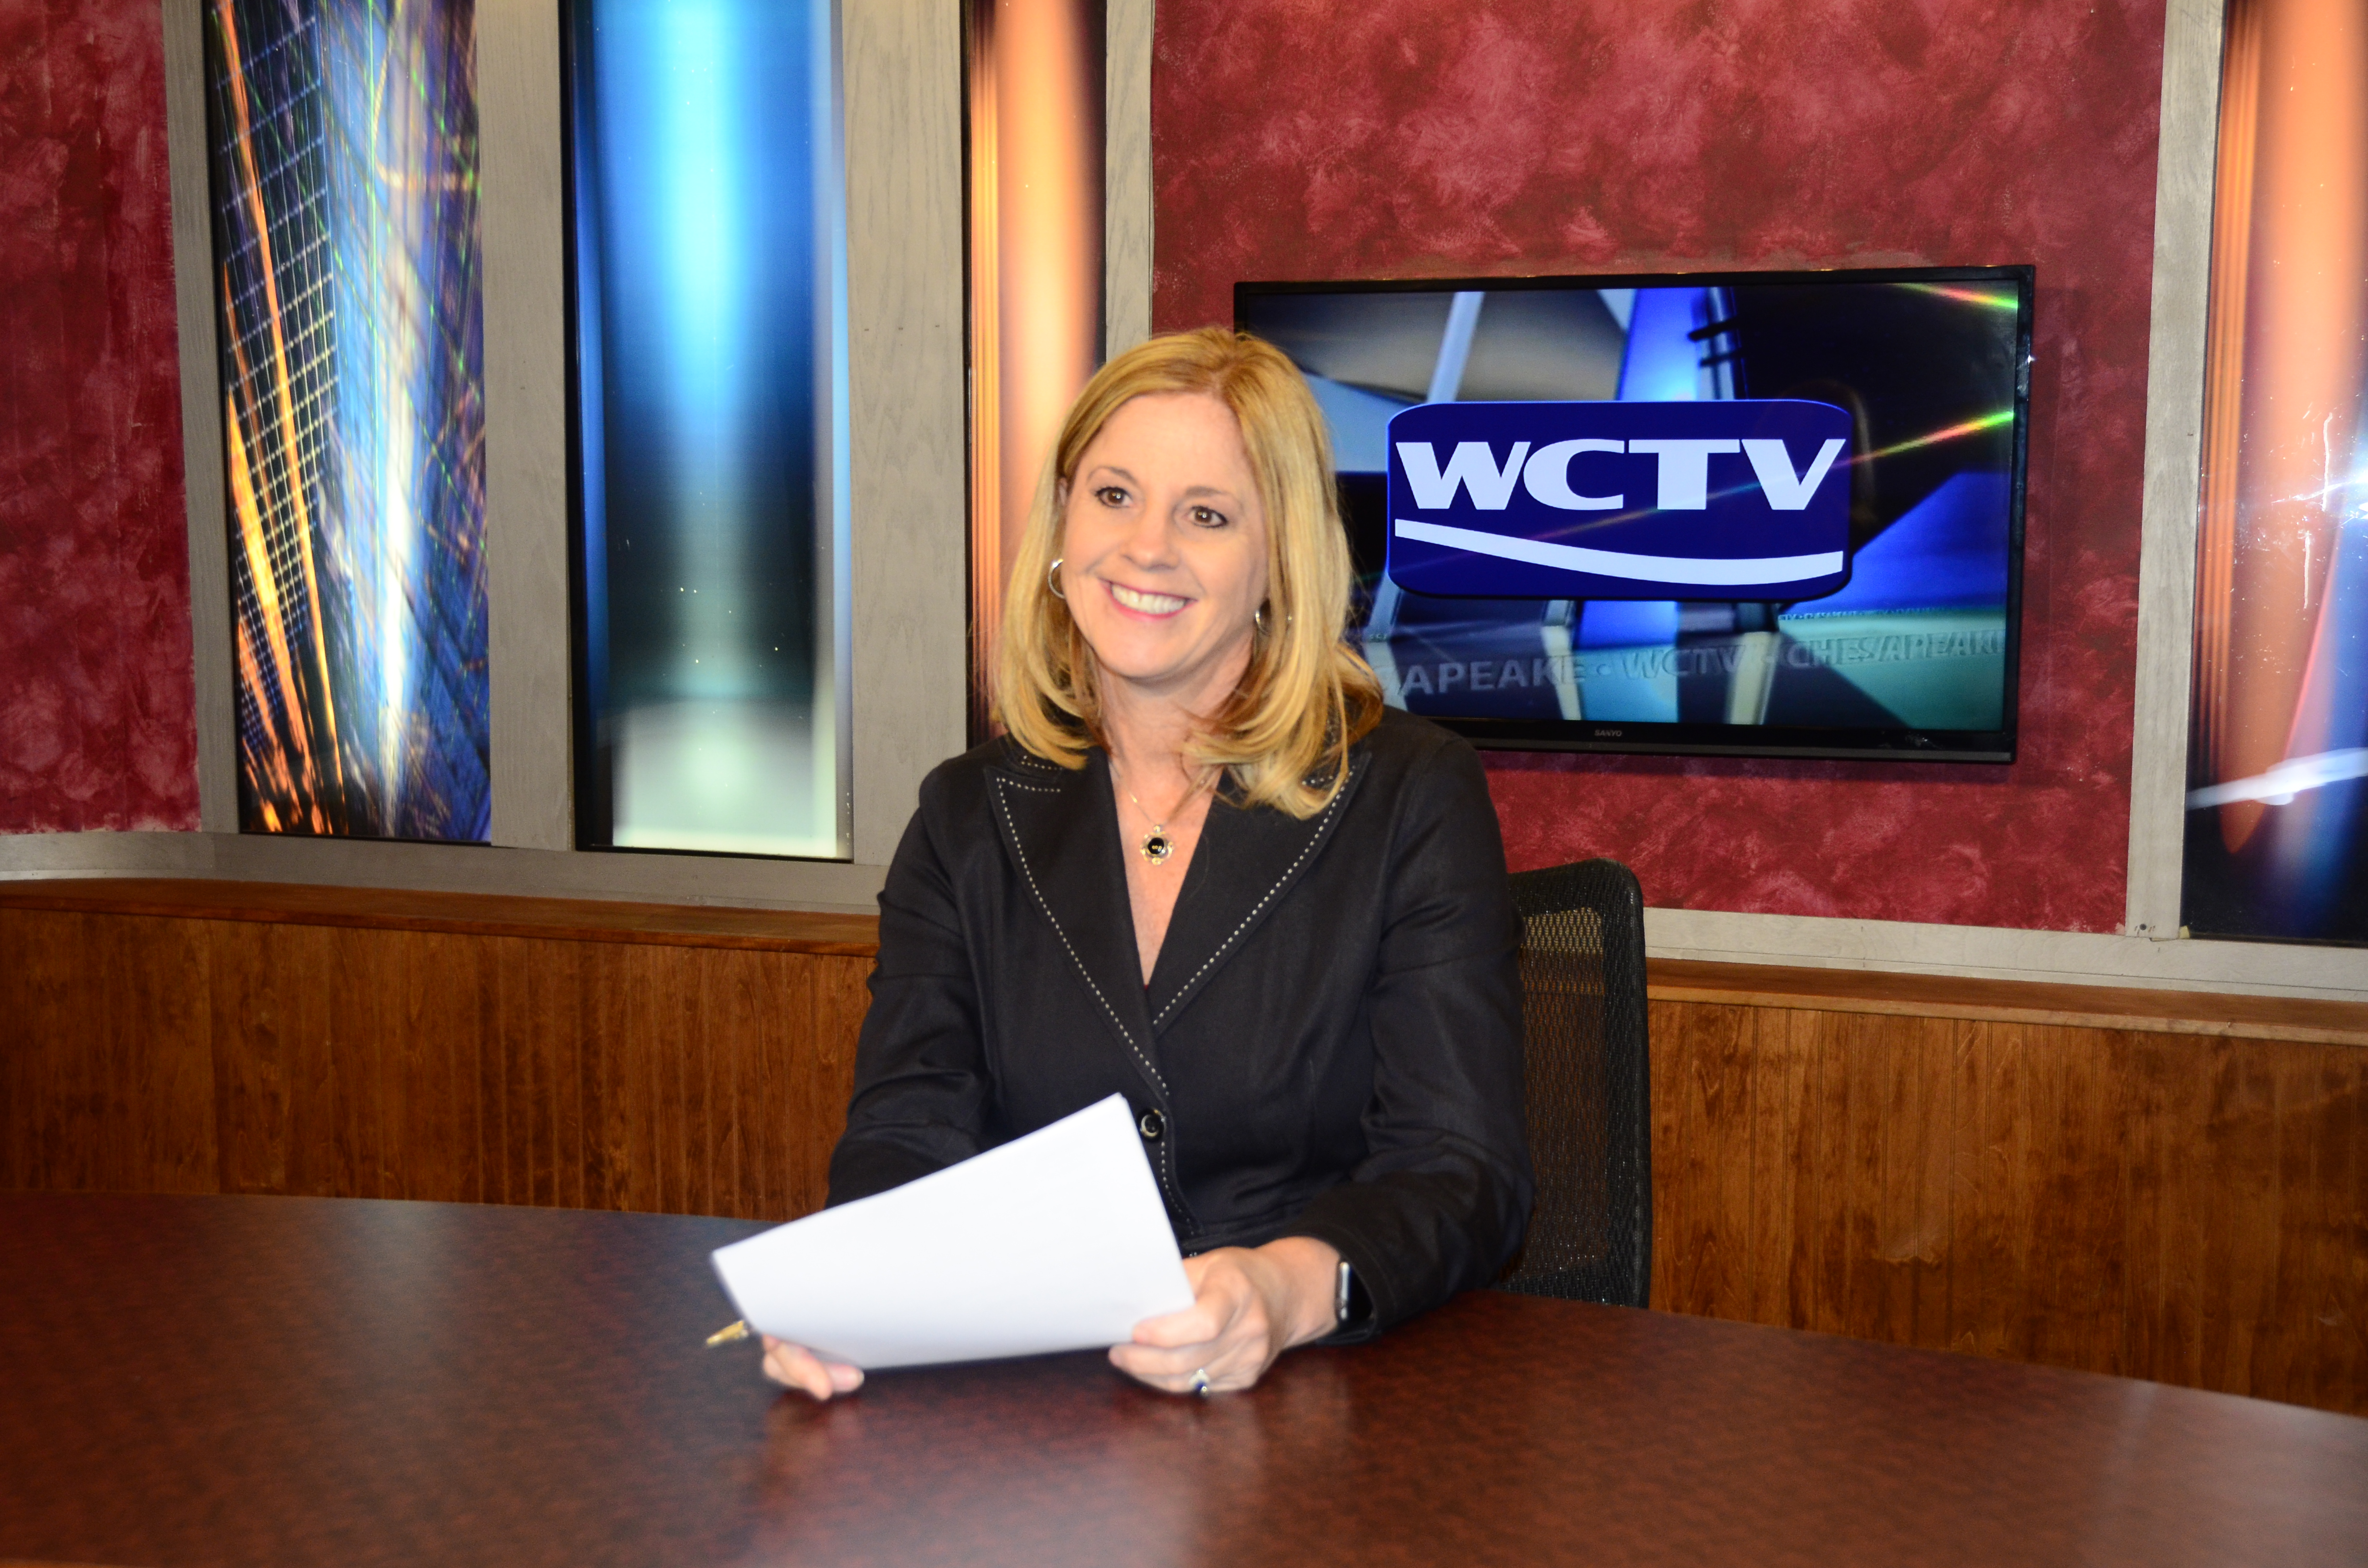 WCTV Chesapeake Television - PeopleNet - Powered by Granicus